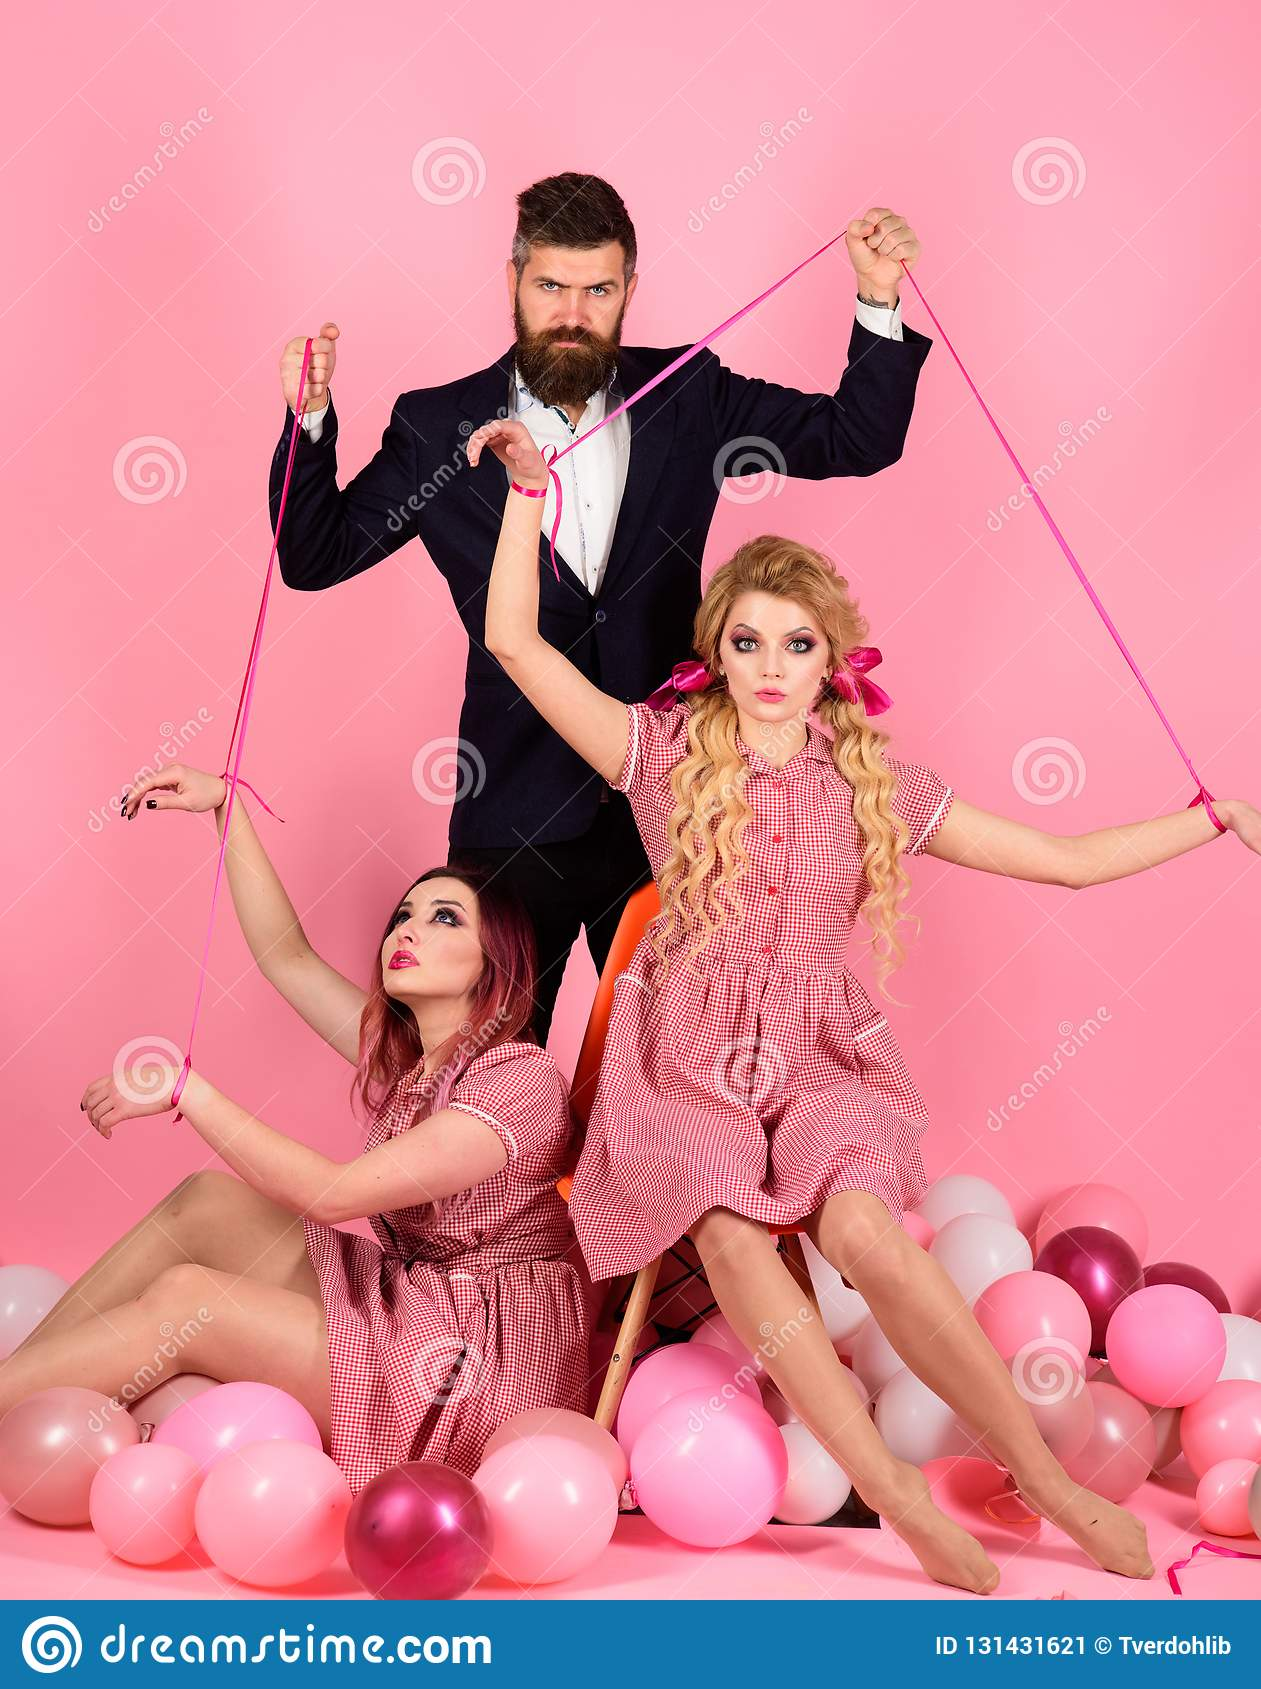 Holidays and dolls. dominance and dependence. Creative idea. Love triangle. retro girls and master in party balloons